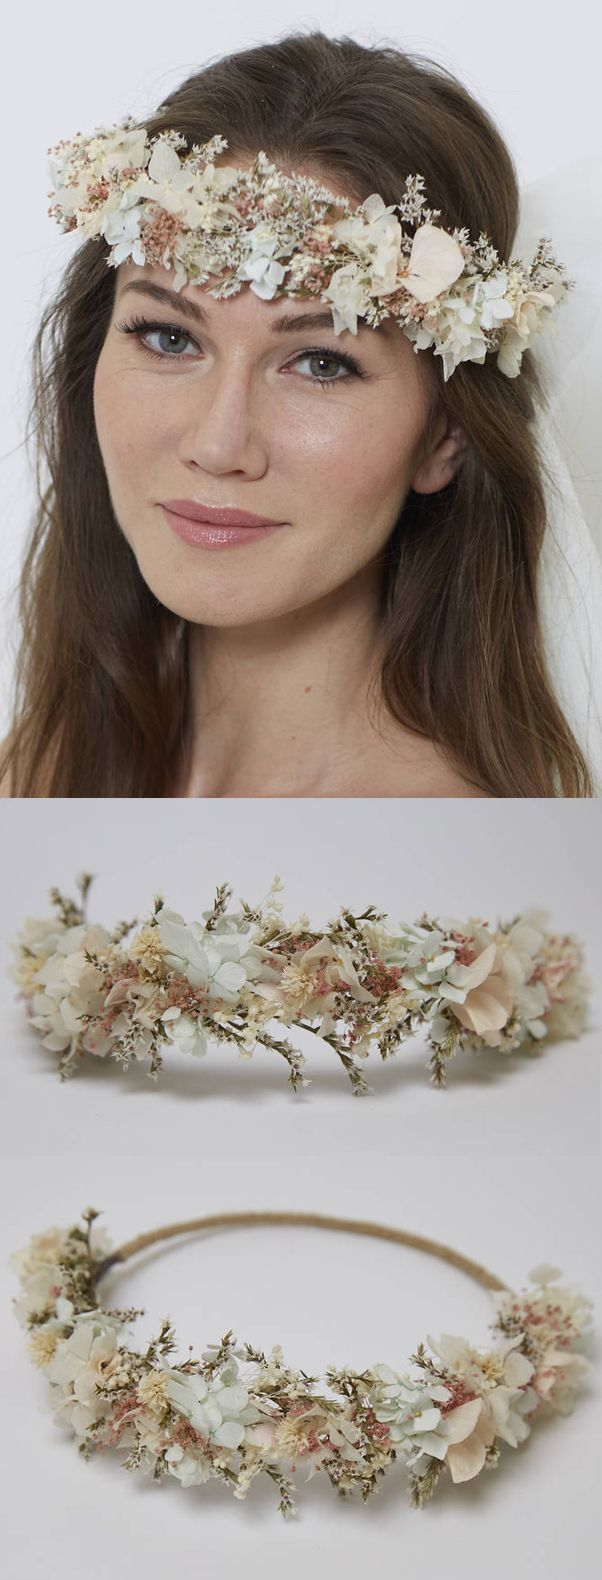 Made from 100% preserved hydrangeas and other treated flowers. It will create a very boho look. It is very light, you'll forget that you're wearing it. The UK's first everlasting all-natural floral accessories company + pioneers of preserved flower crowns, delivering luxurious, unique exquisite headpieces for contemporary brides. Bridal Crystal Crown, Halo Headband, Halo Crown, Hair Vine, Headband, Boho Circlet. #wedding #winterwedding #bride #bridalwear #millinery #bridalcrown…